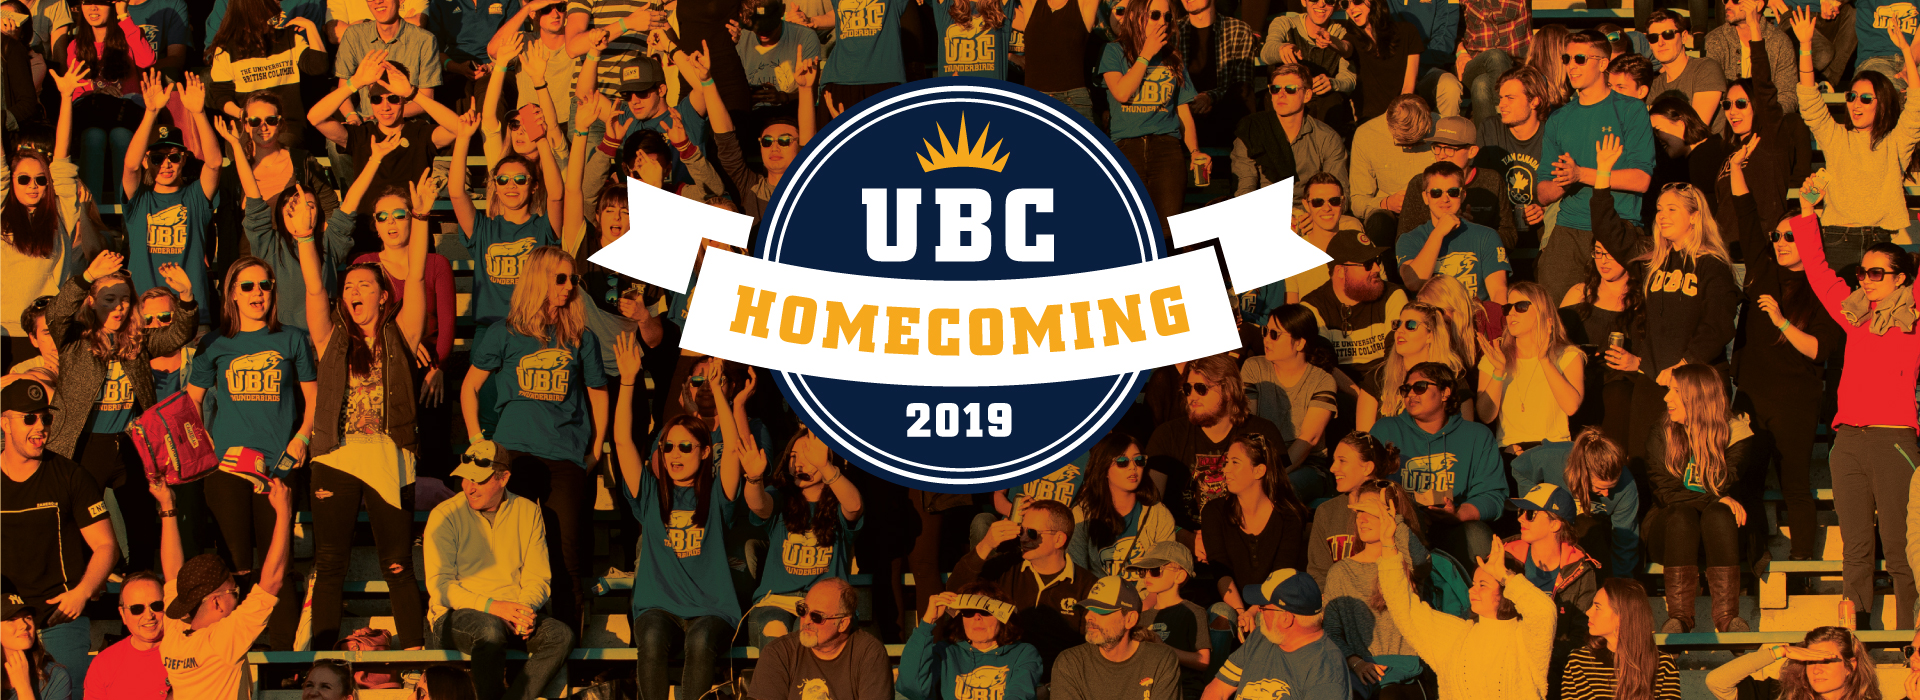 UBC Homecoming - Saturday, September 14, 2019